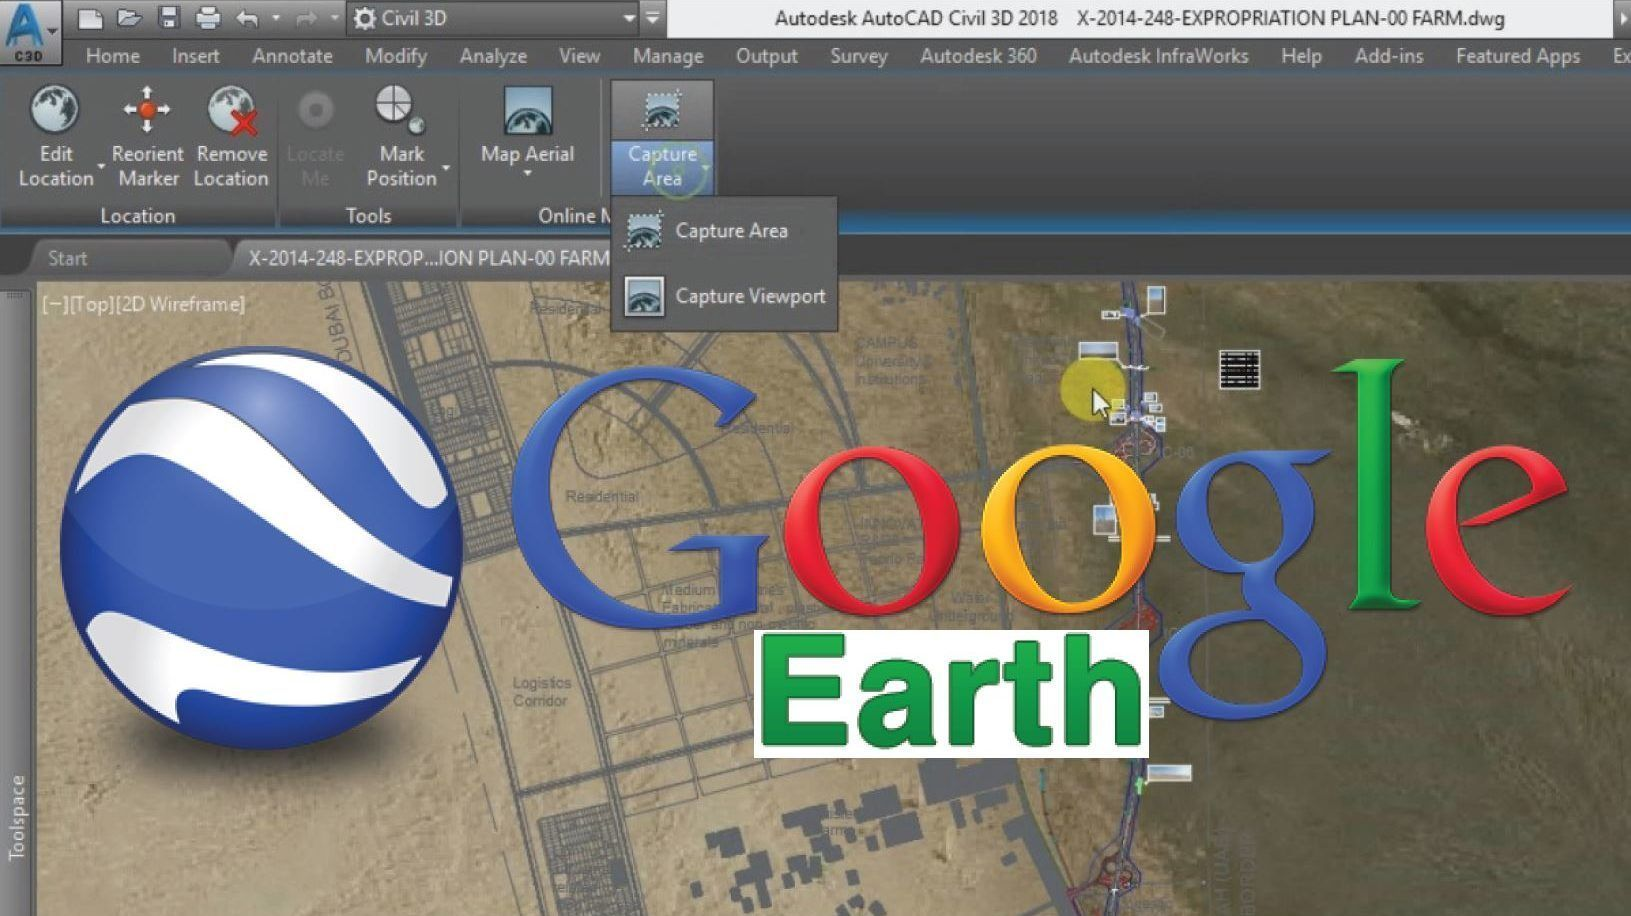 Import Google Earth Map Into Autocad Civil 3d Earth Map Autocad